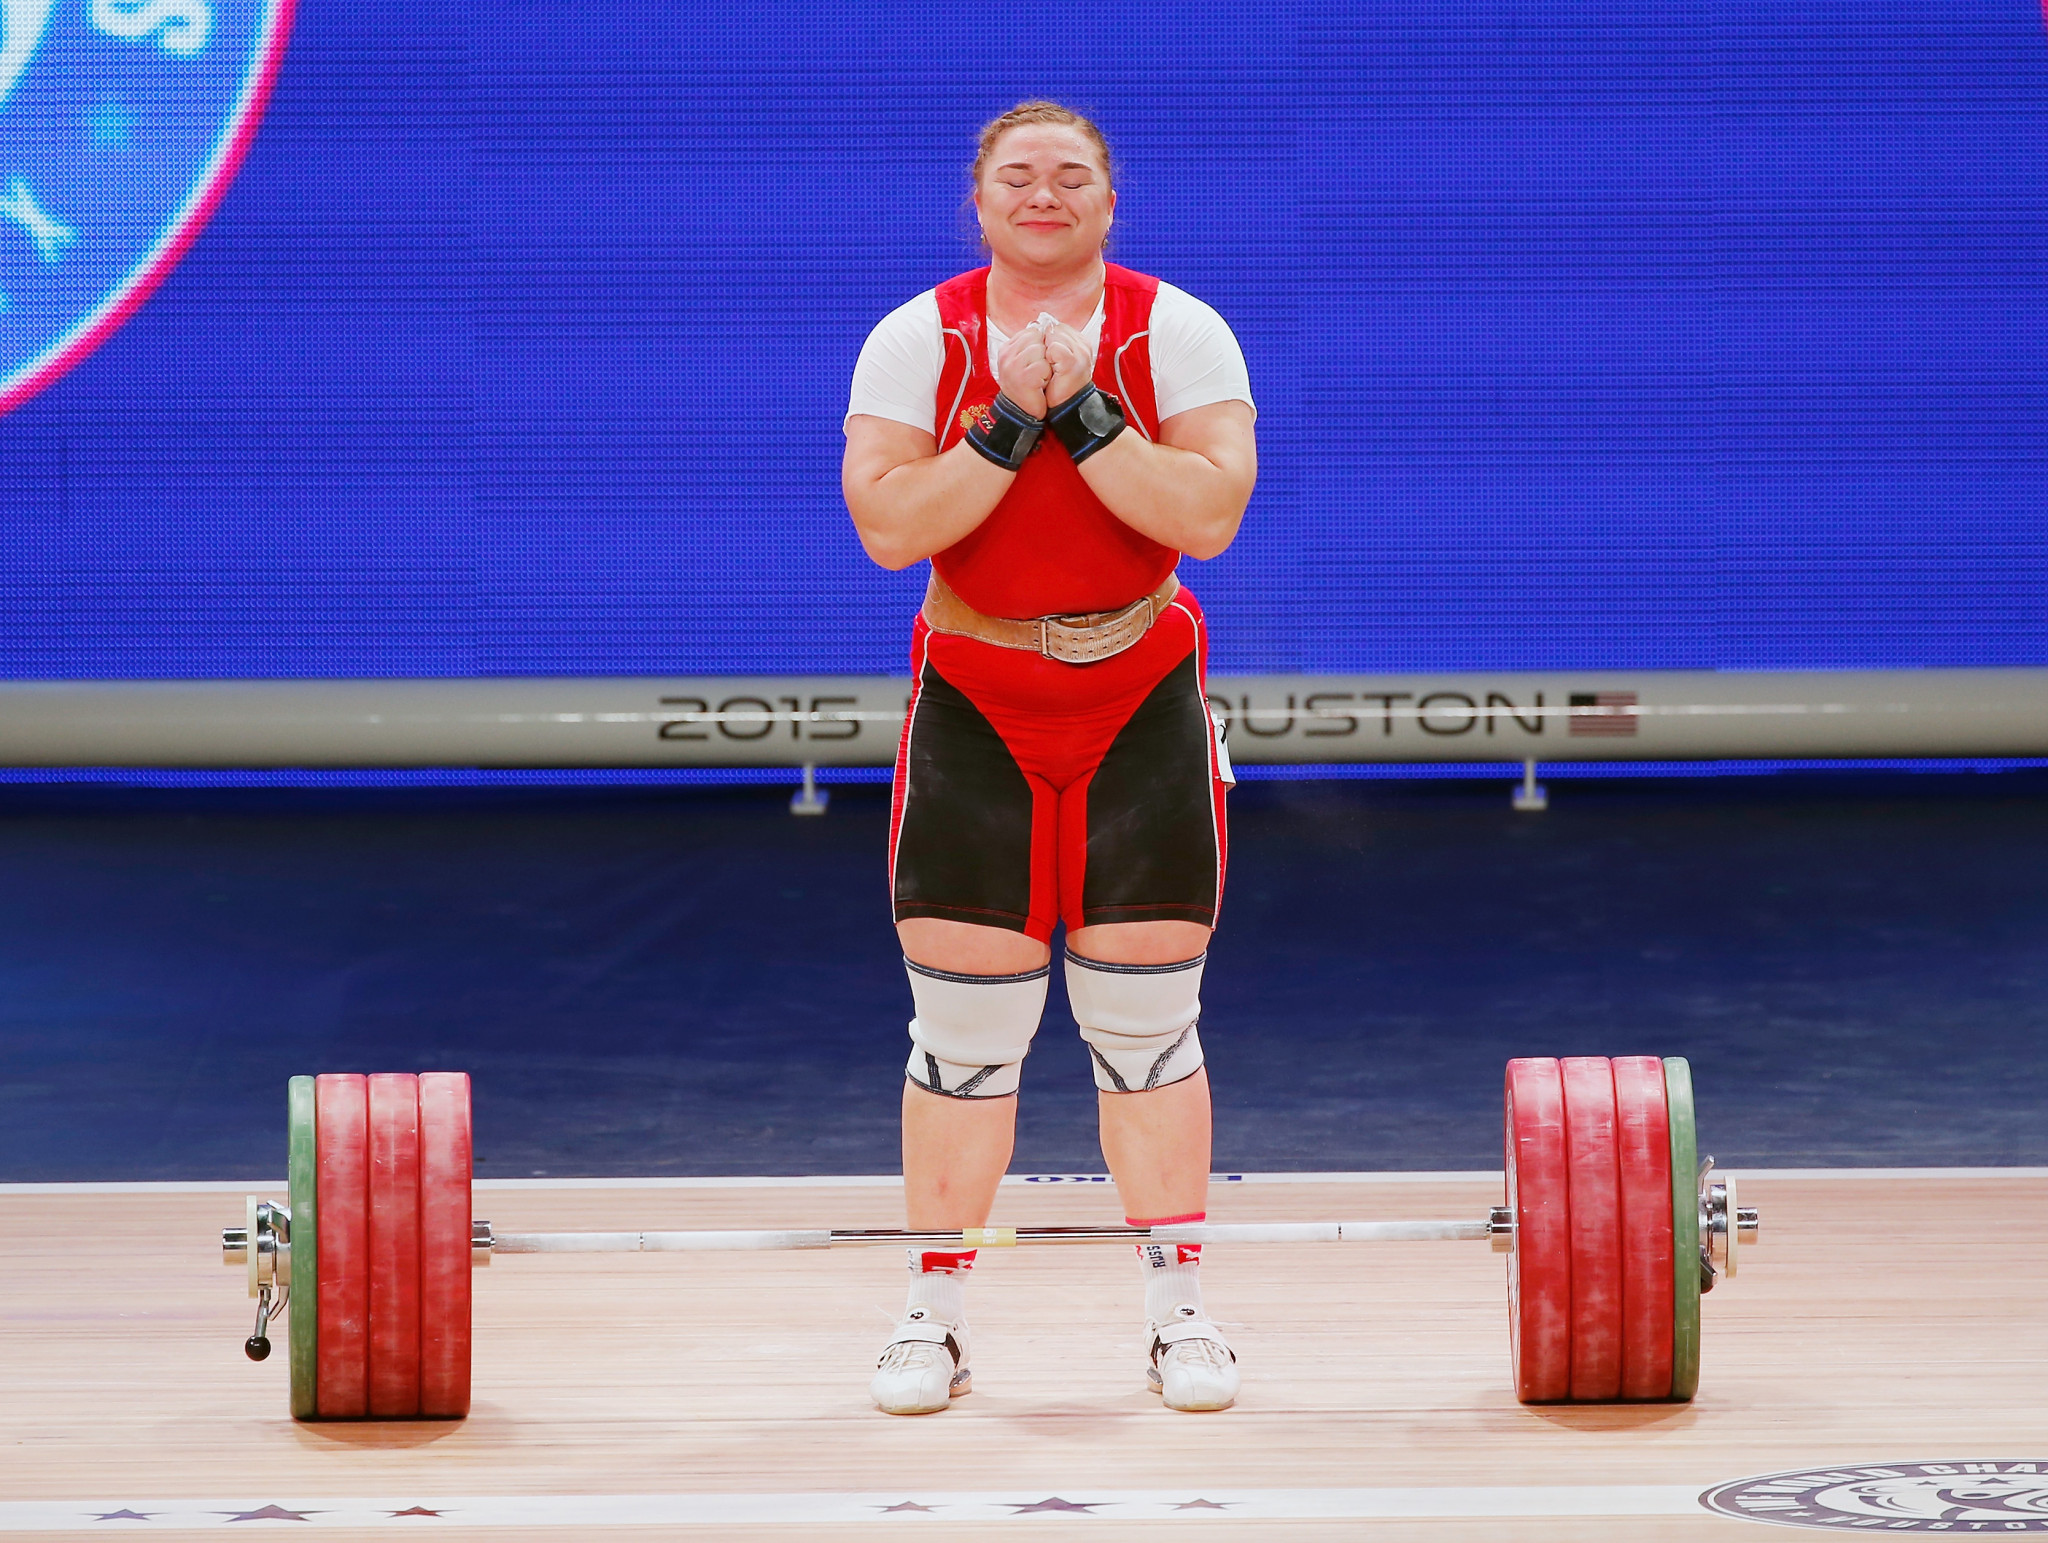 Russian Weightlifting Championships set to take place in August